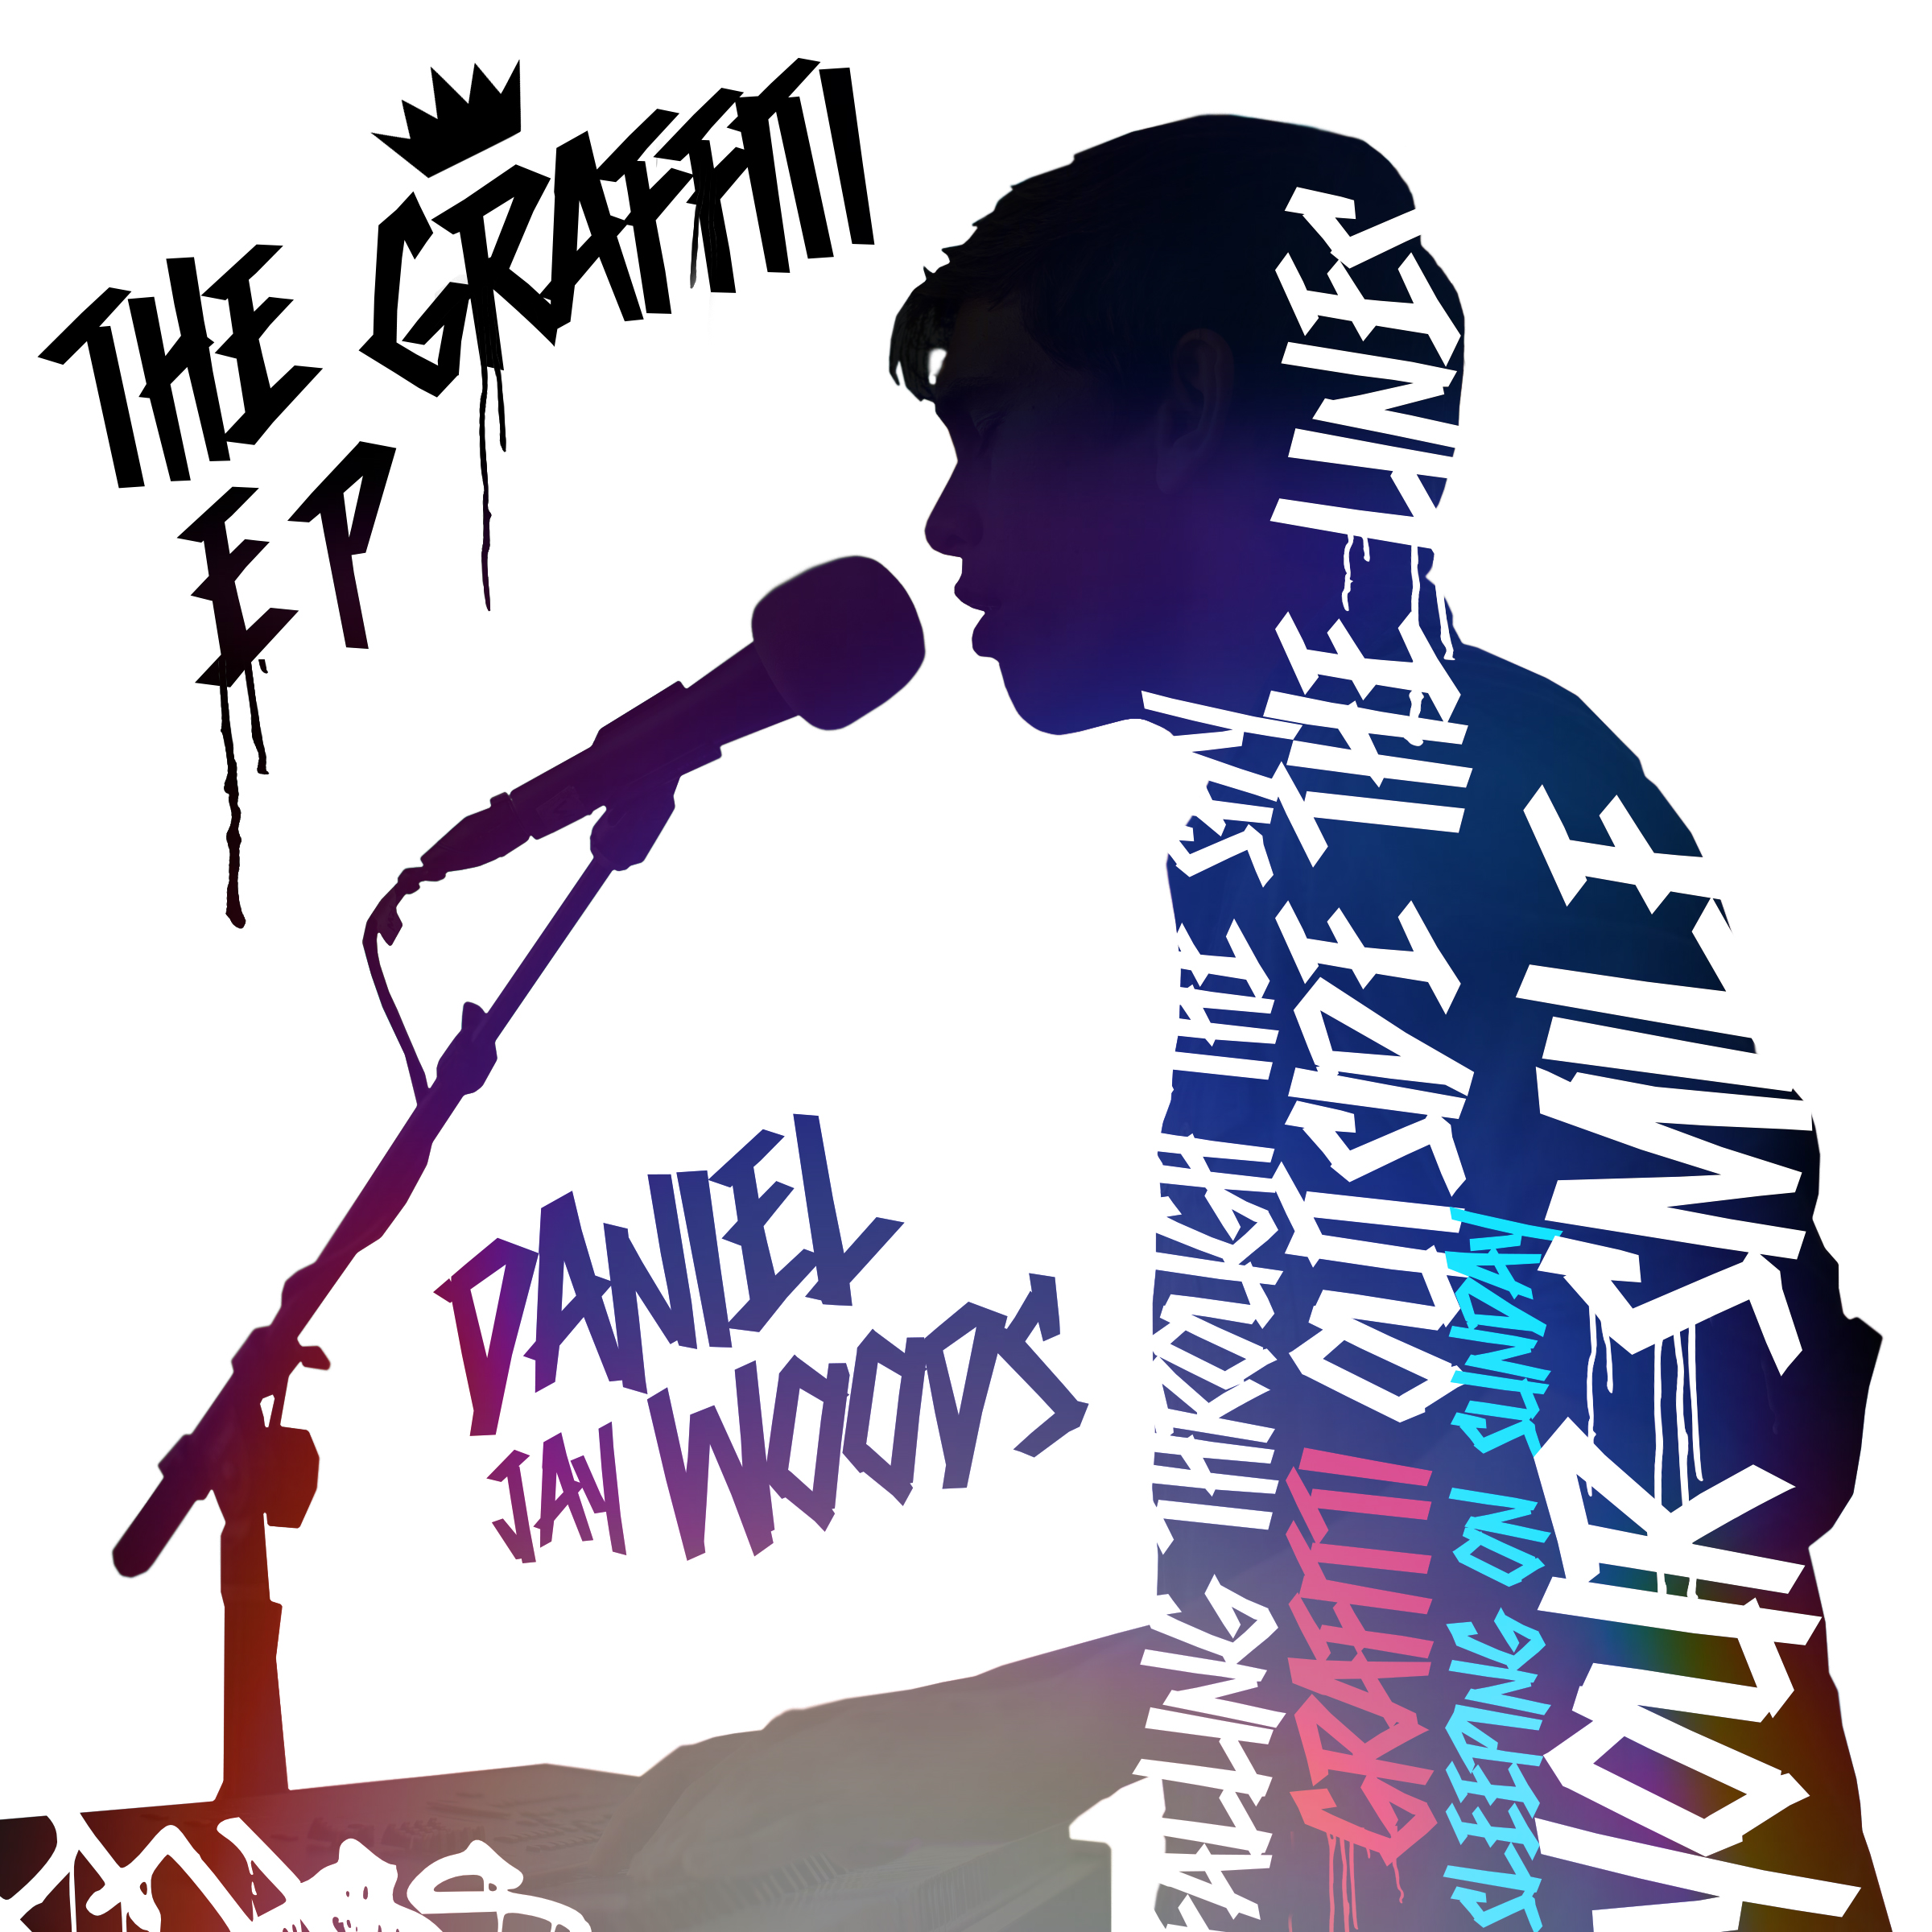 The Graffiti EP